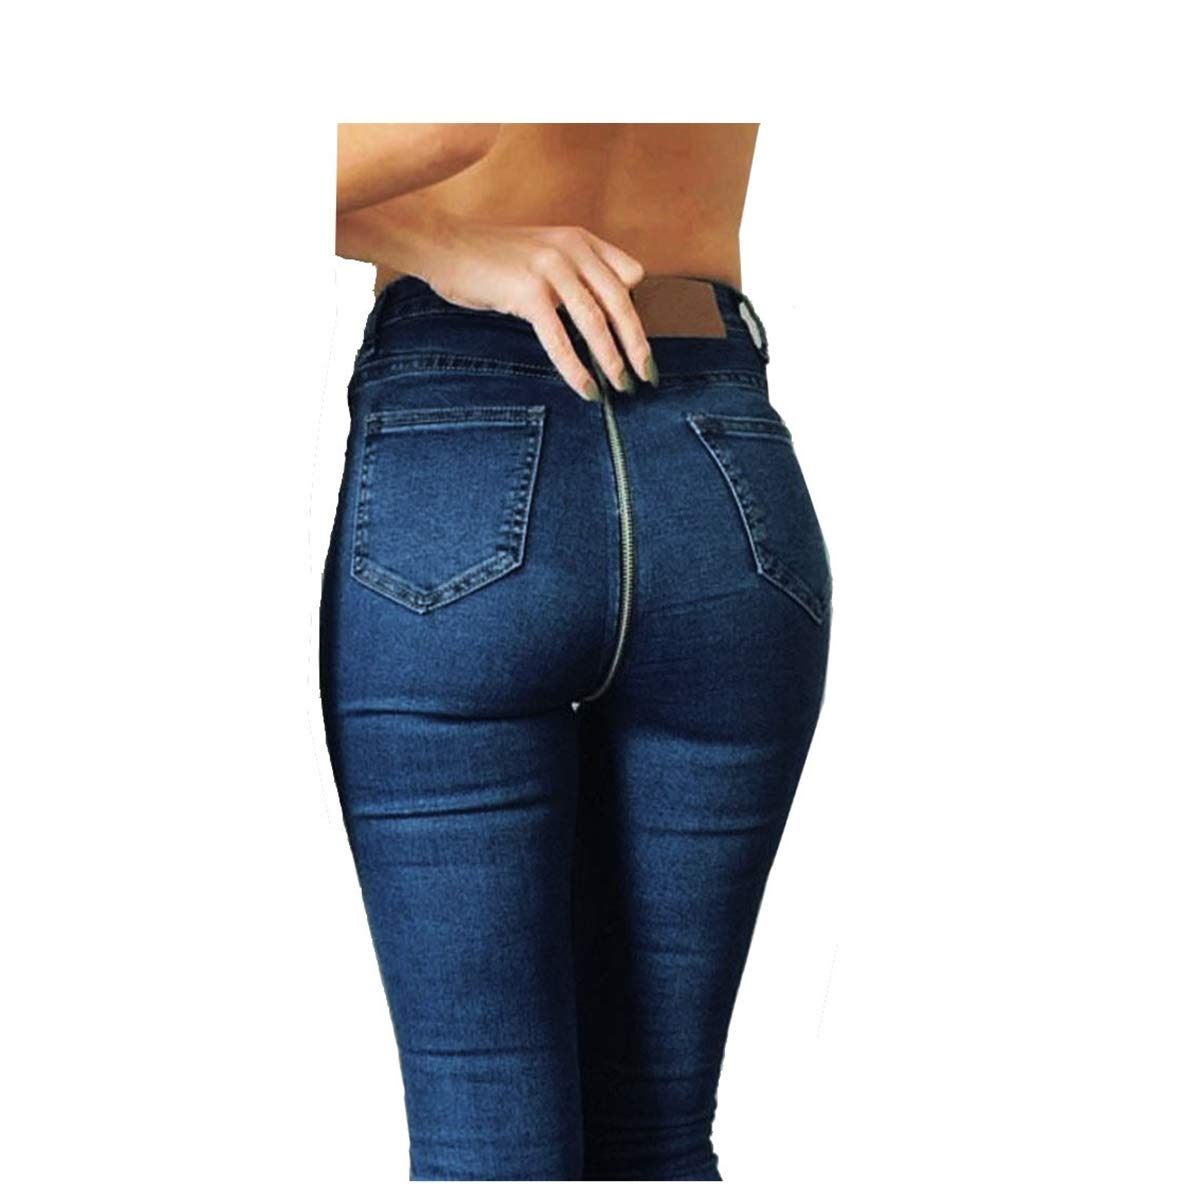 Women Ladies Back Zipper Jeans,Autumn Solid Pencil Stretch Denim Skinny High Waist Long Pants Trousers